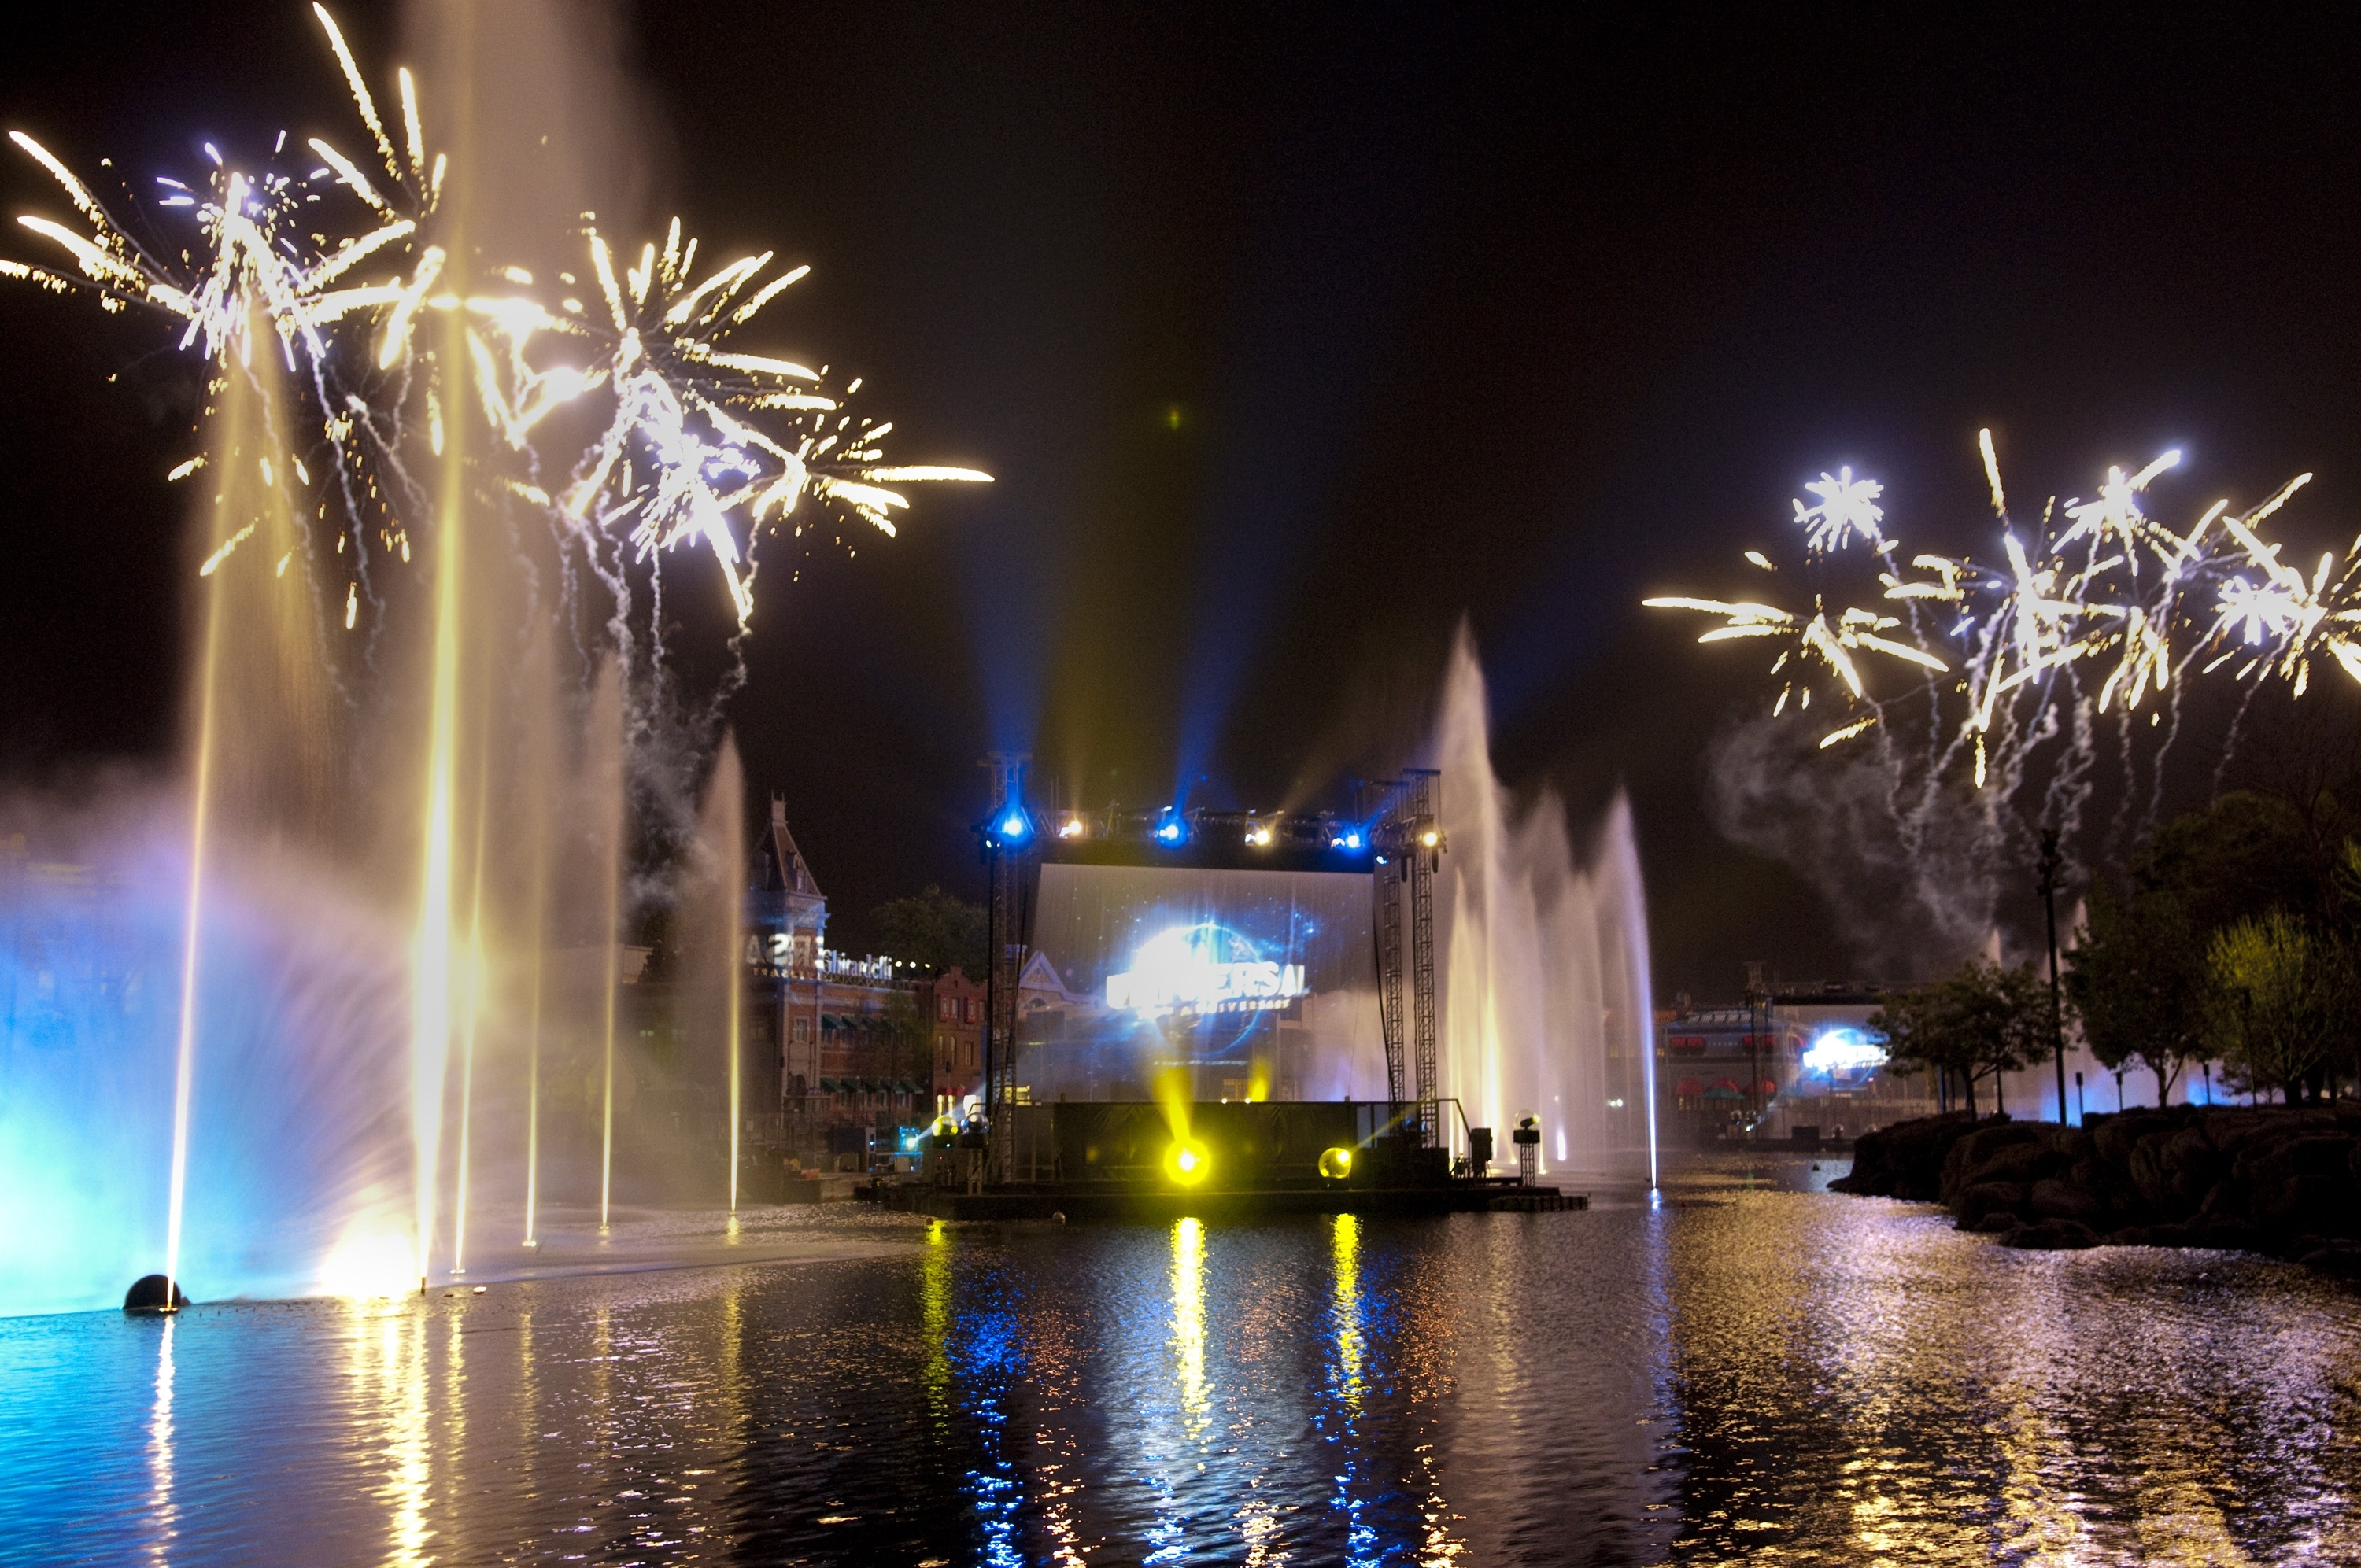 Universal's Cinematic Spectacular has closed